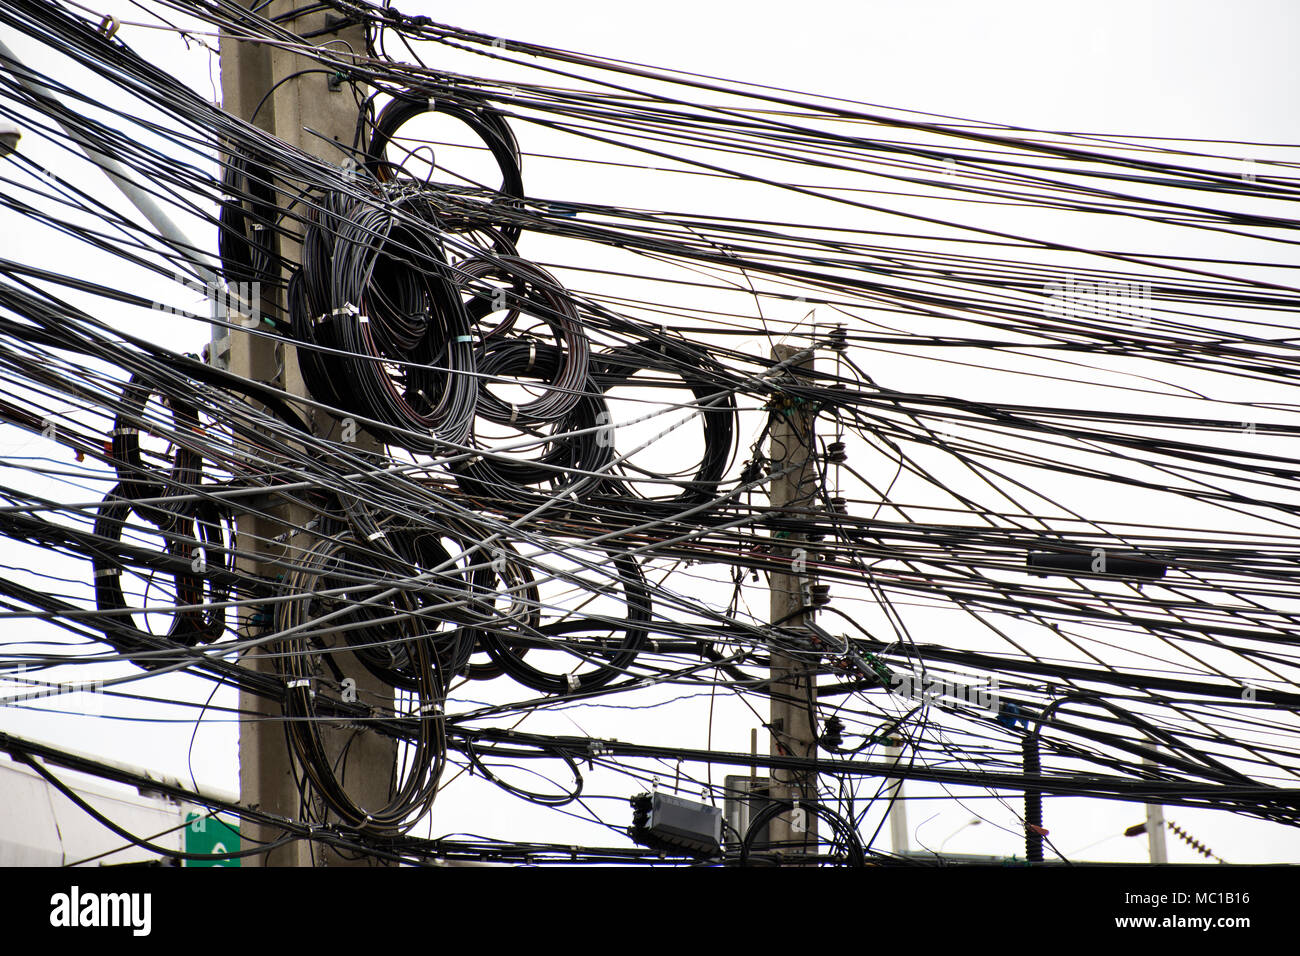 hight resolution of messy telephone wiring wiring diagram used many wires messy with power line cables transformers and